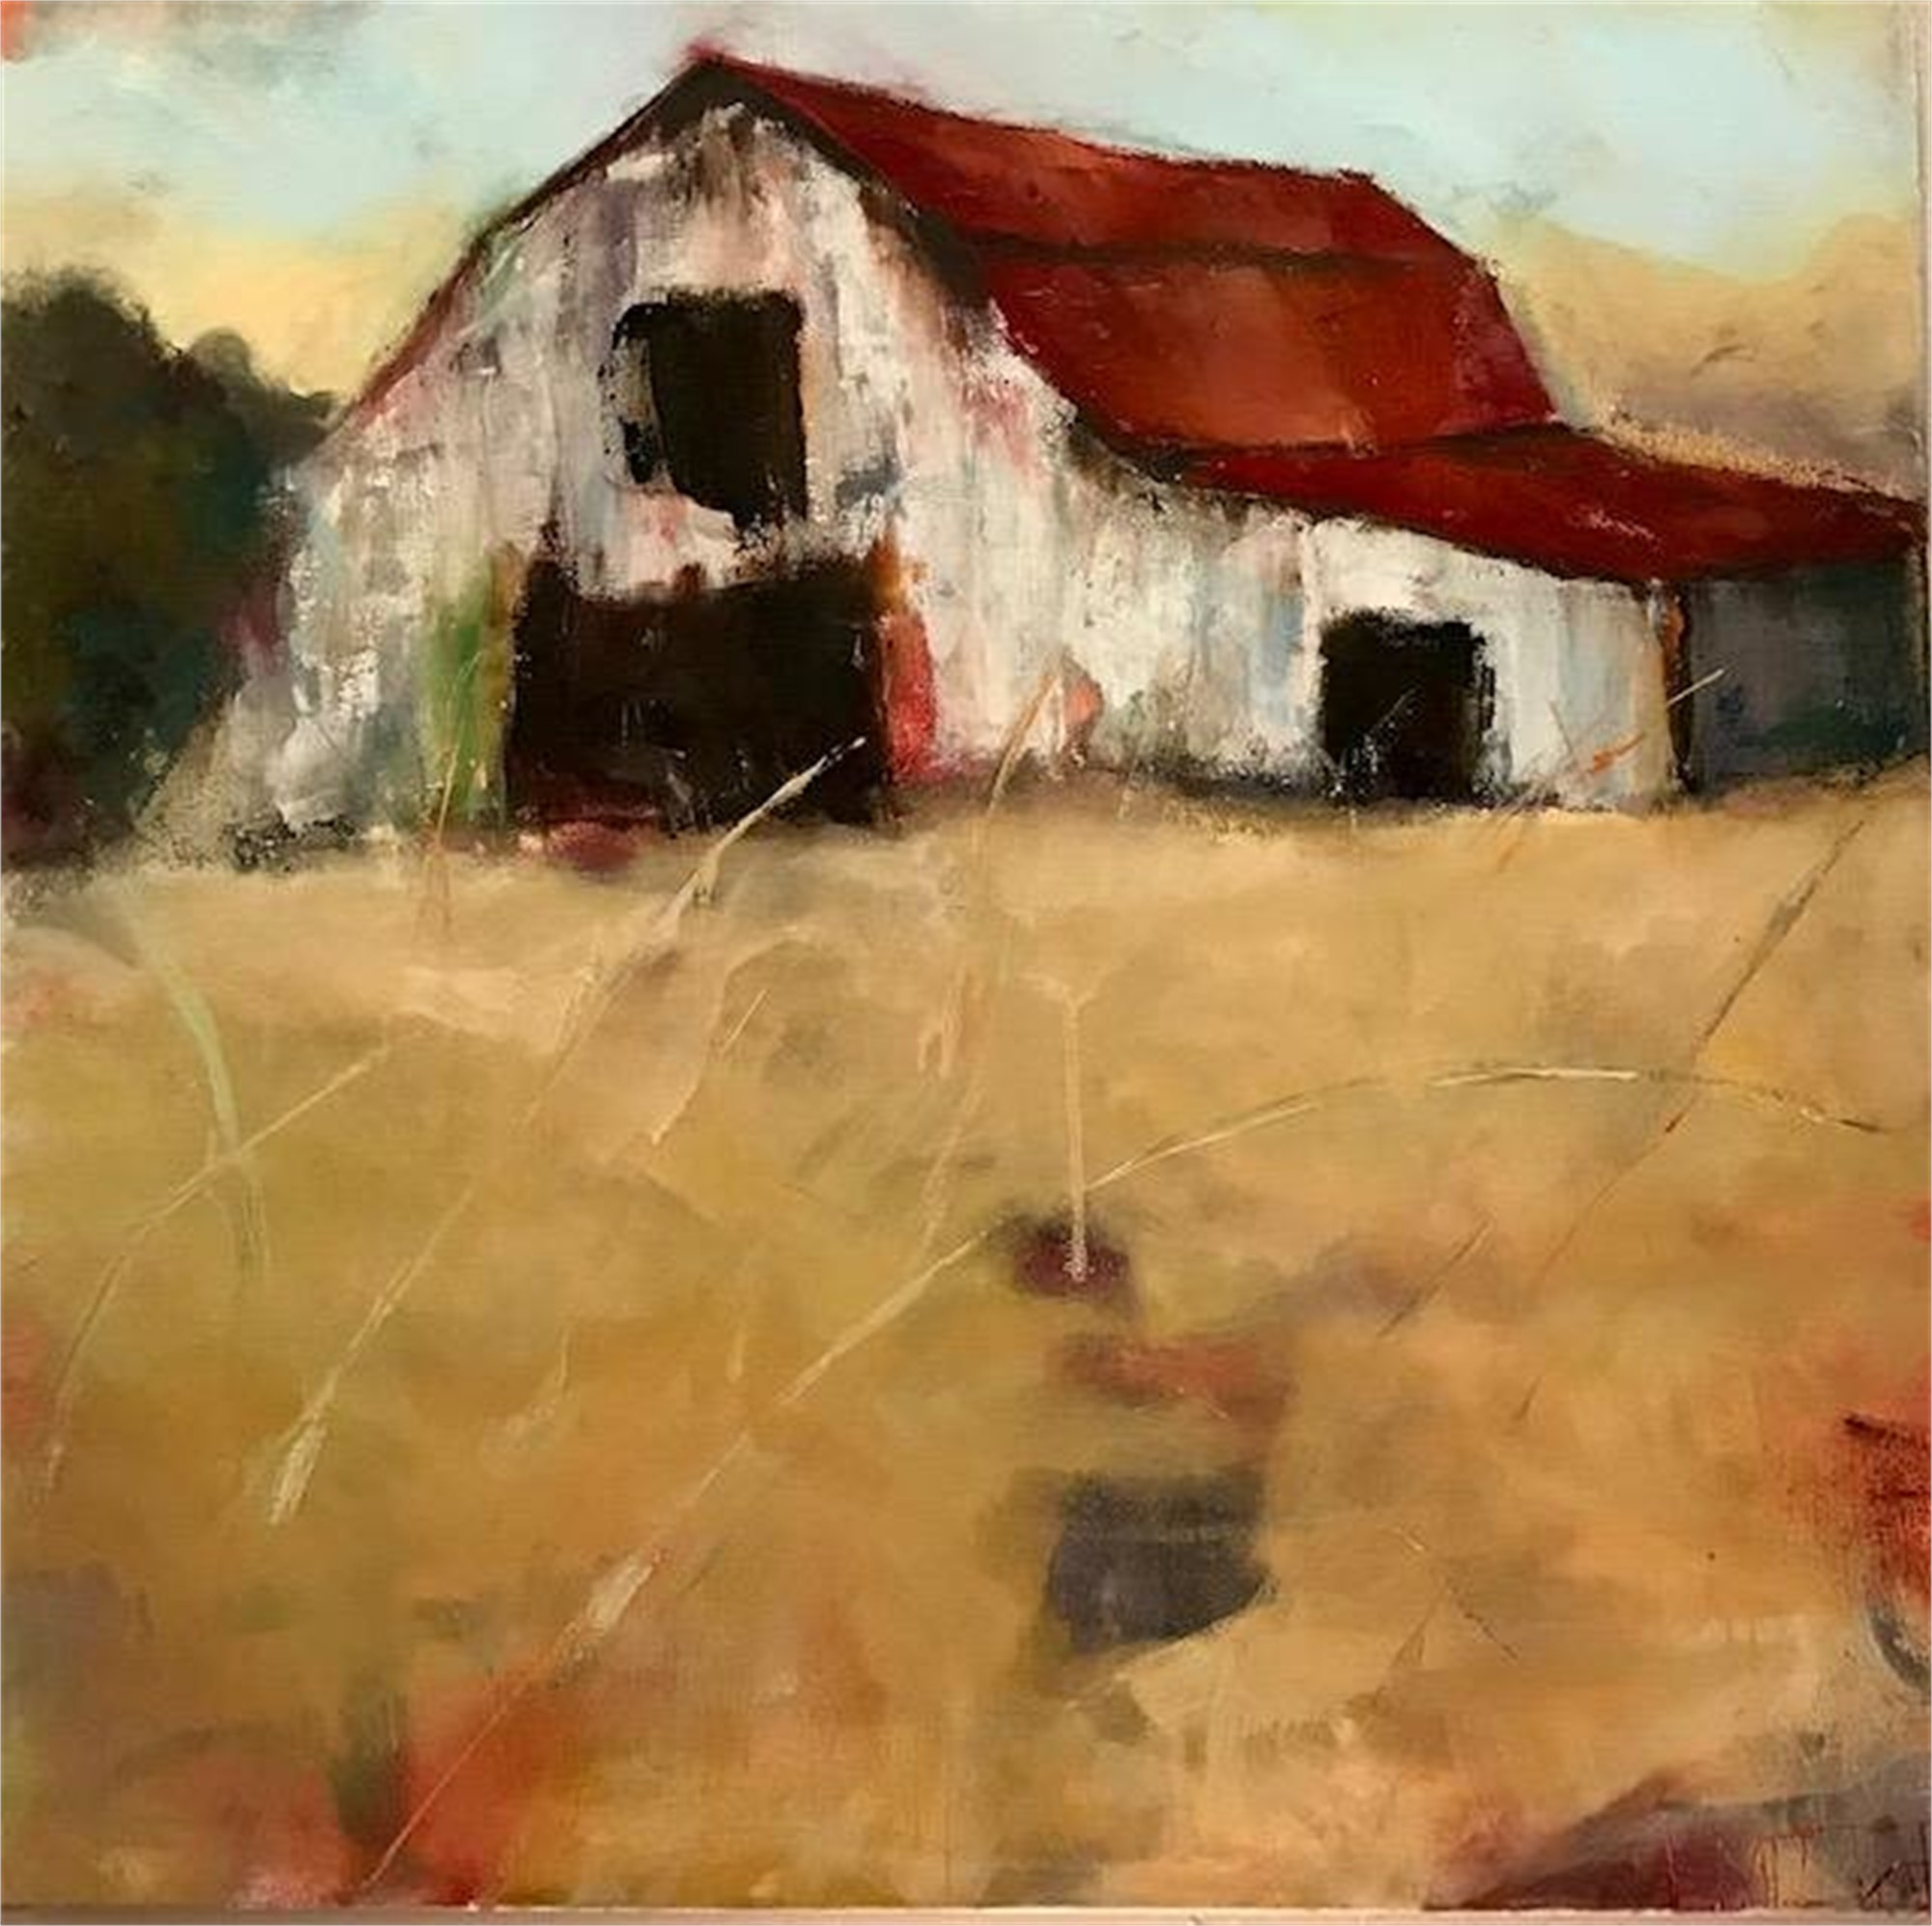 Red Roof, 2017 by Lisa Moore